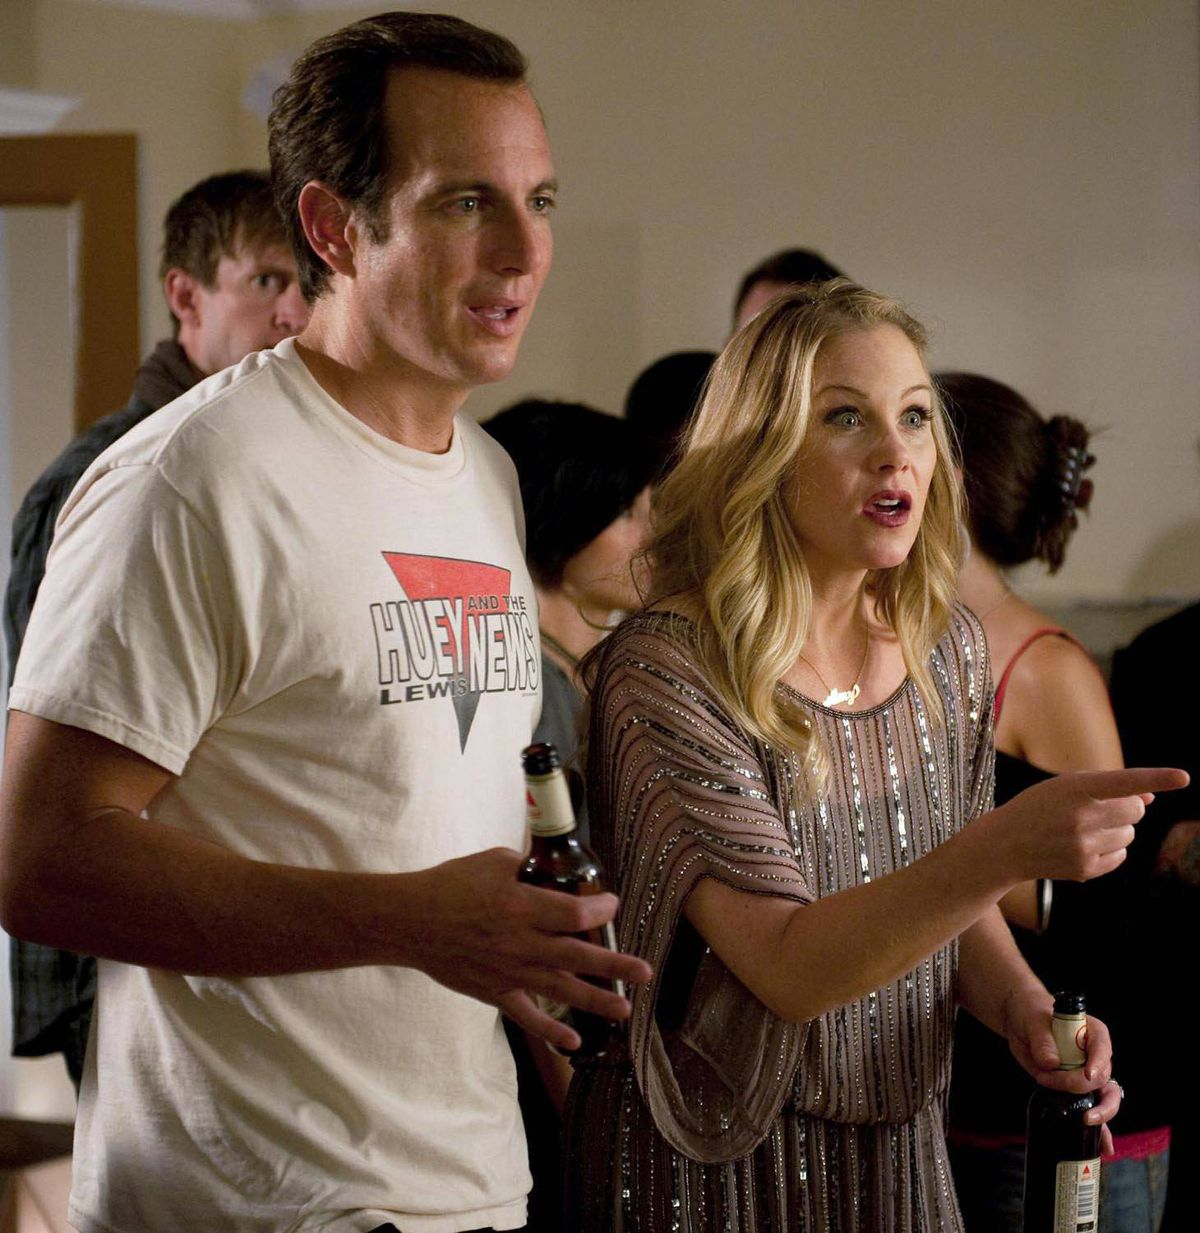 COMEDY Up All Night CTV, 8:30 p.m.; NBC, 9:30 p.m. ET/PT Love or something like it is in the air in tonight's edition of this popular rookie sitcom. New parents Reagan (Christina Applegate) and Chris (Will Arnett) are actually jealous when their friends Ava (Maya Rudolph) and Kevin (Jason Lee) have a huge fight on Valentine's Day. The only solution: Create a little drama to put their own relationship to the test.